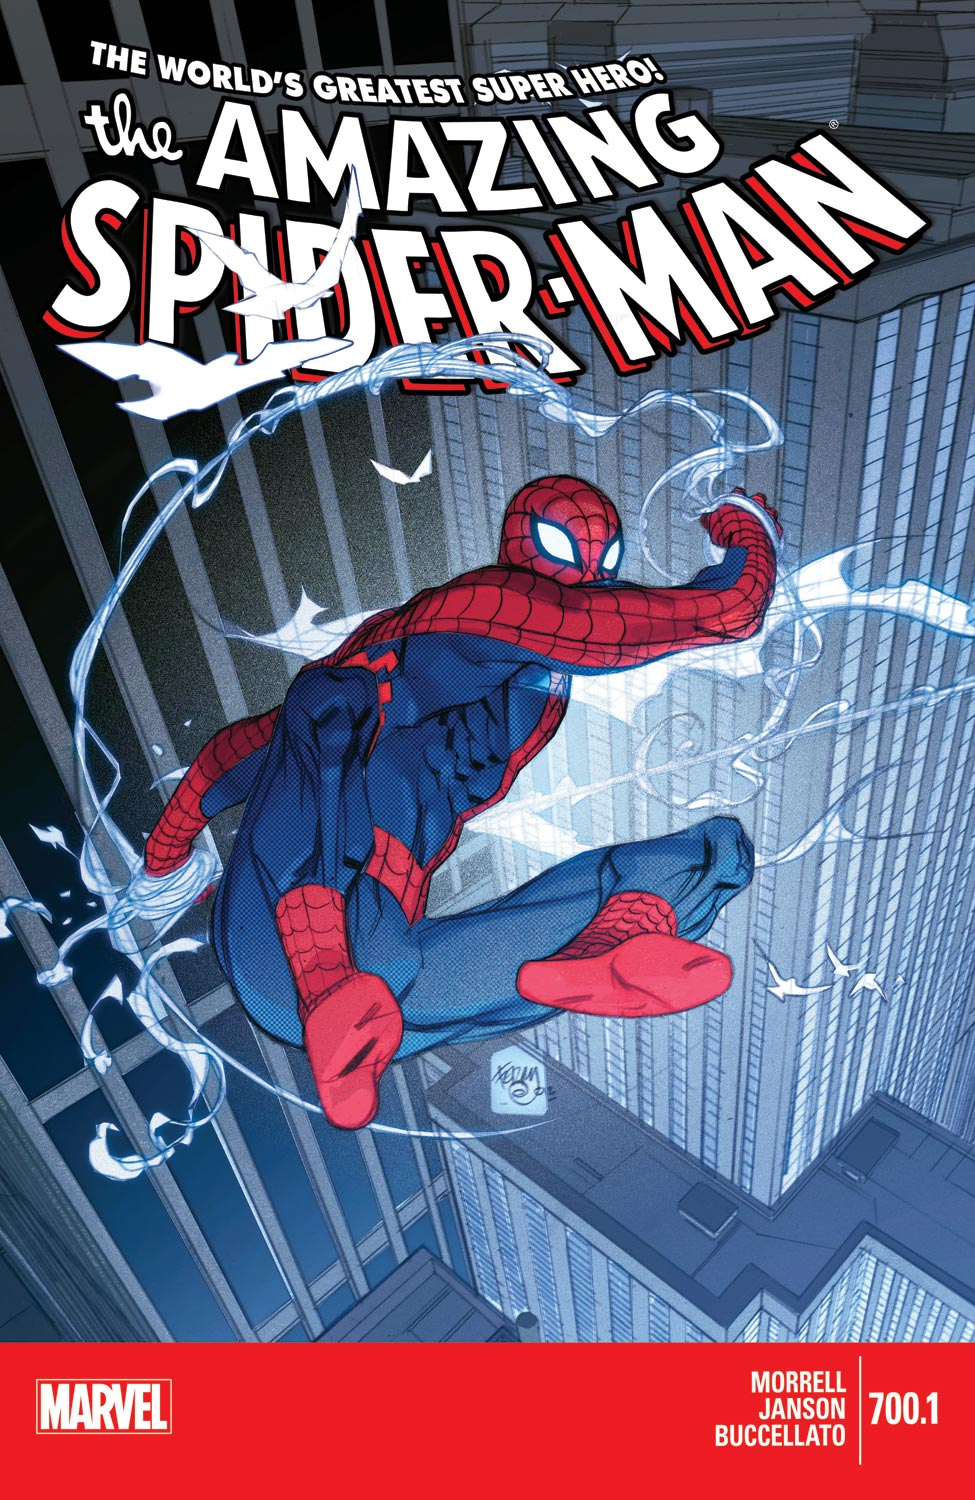 Amazing Spider-Man (1999) #700.1